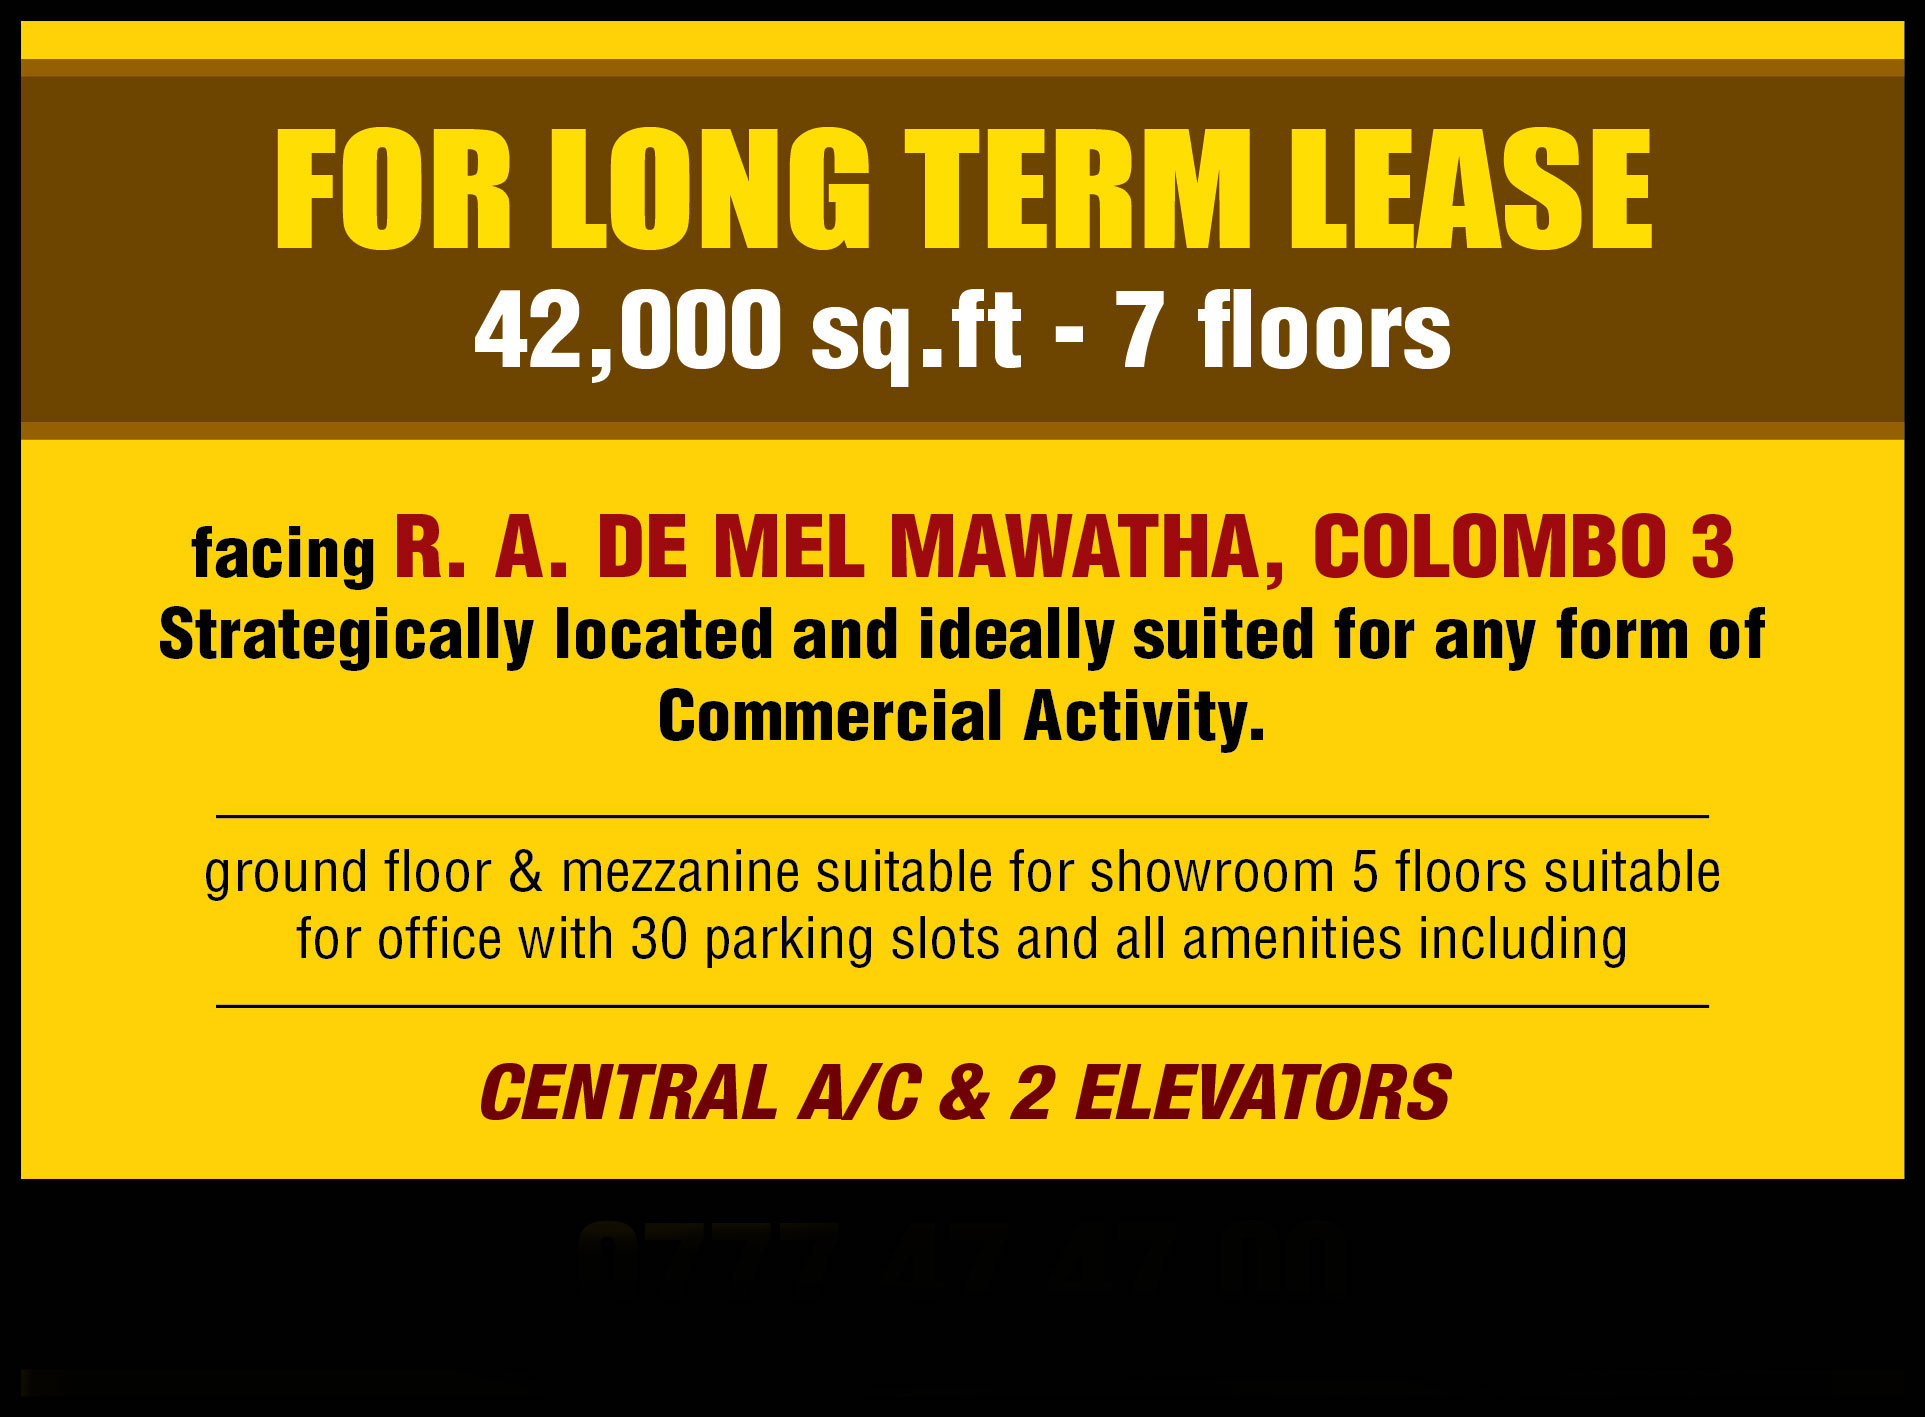 Commercial building for rent/lease in Colombo 03